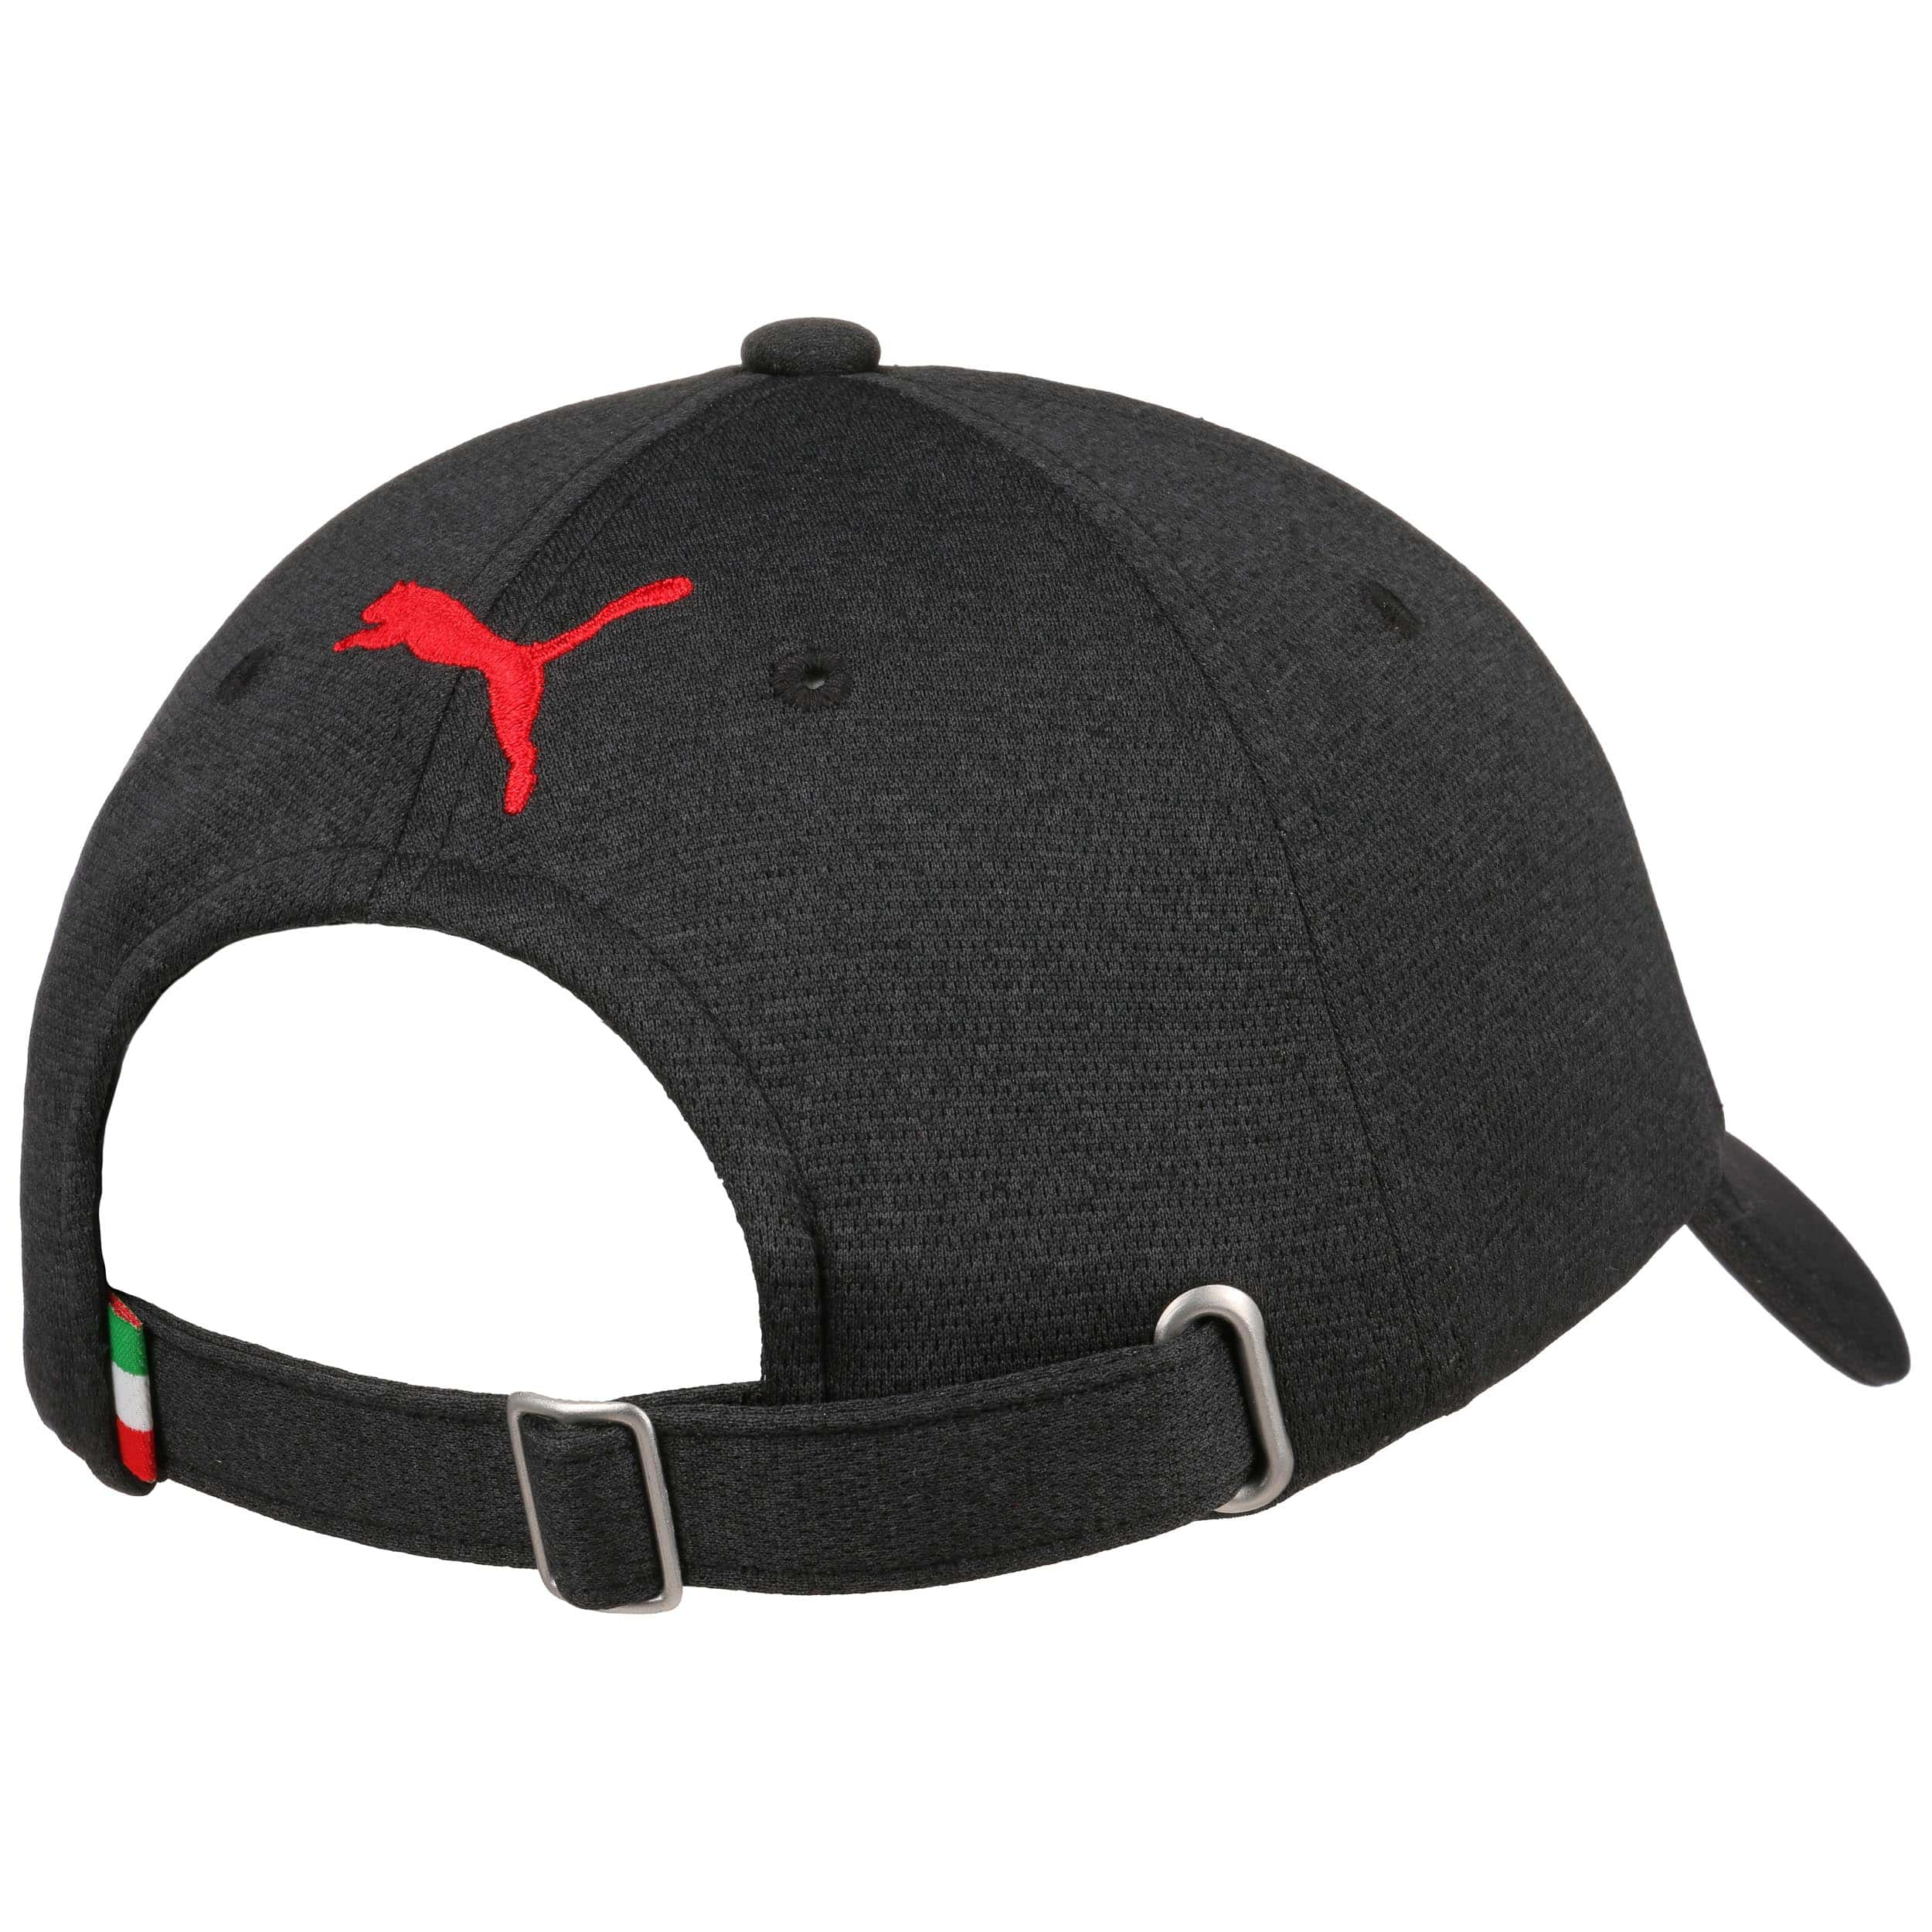 vettel caps puma hats replica ferrari by cap eur